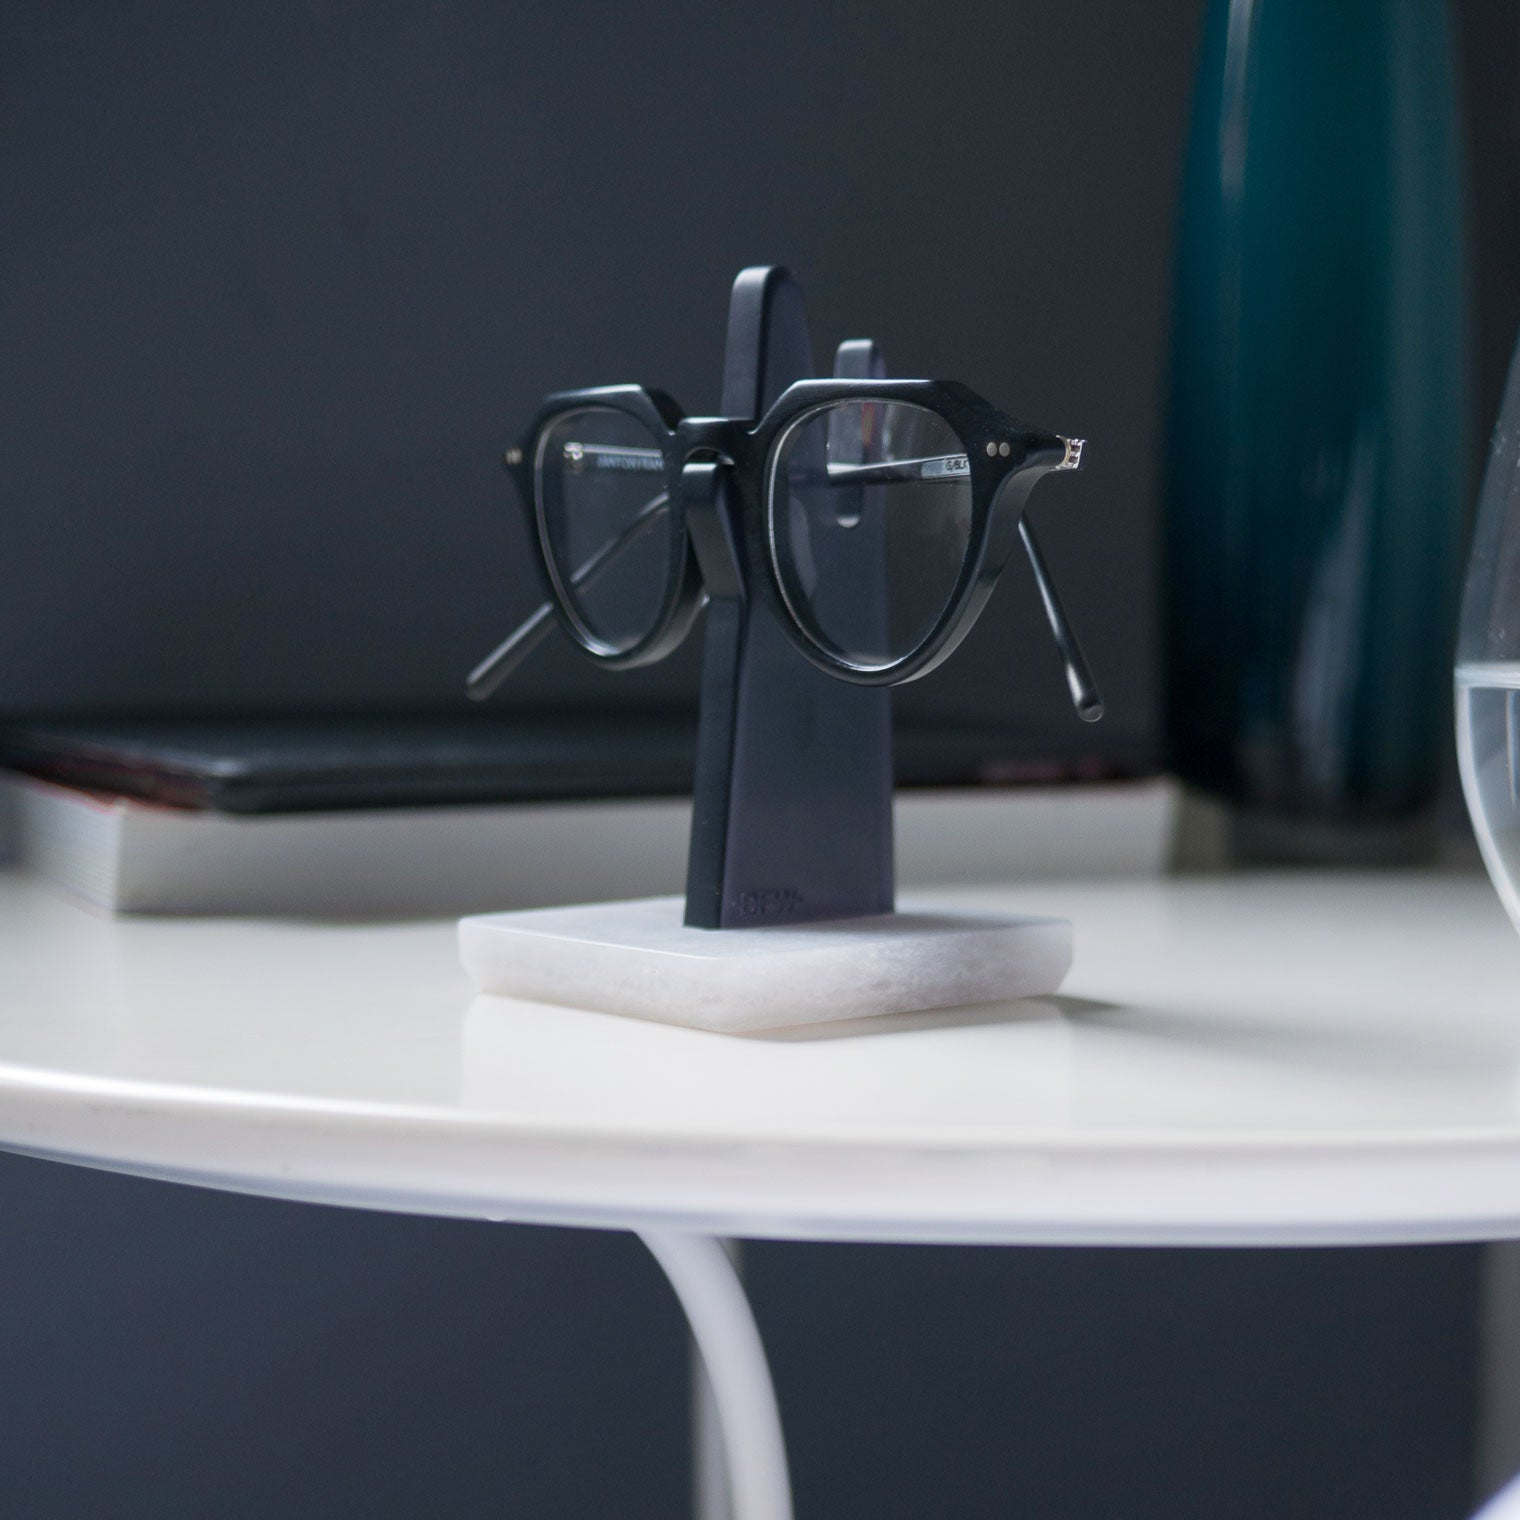 Black oval glasses resting on grey spectacle stand